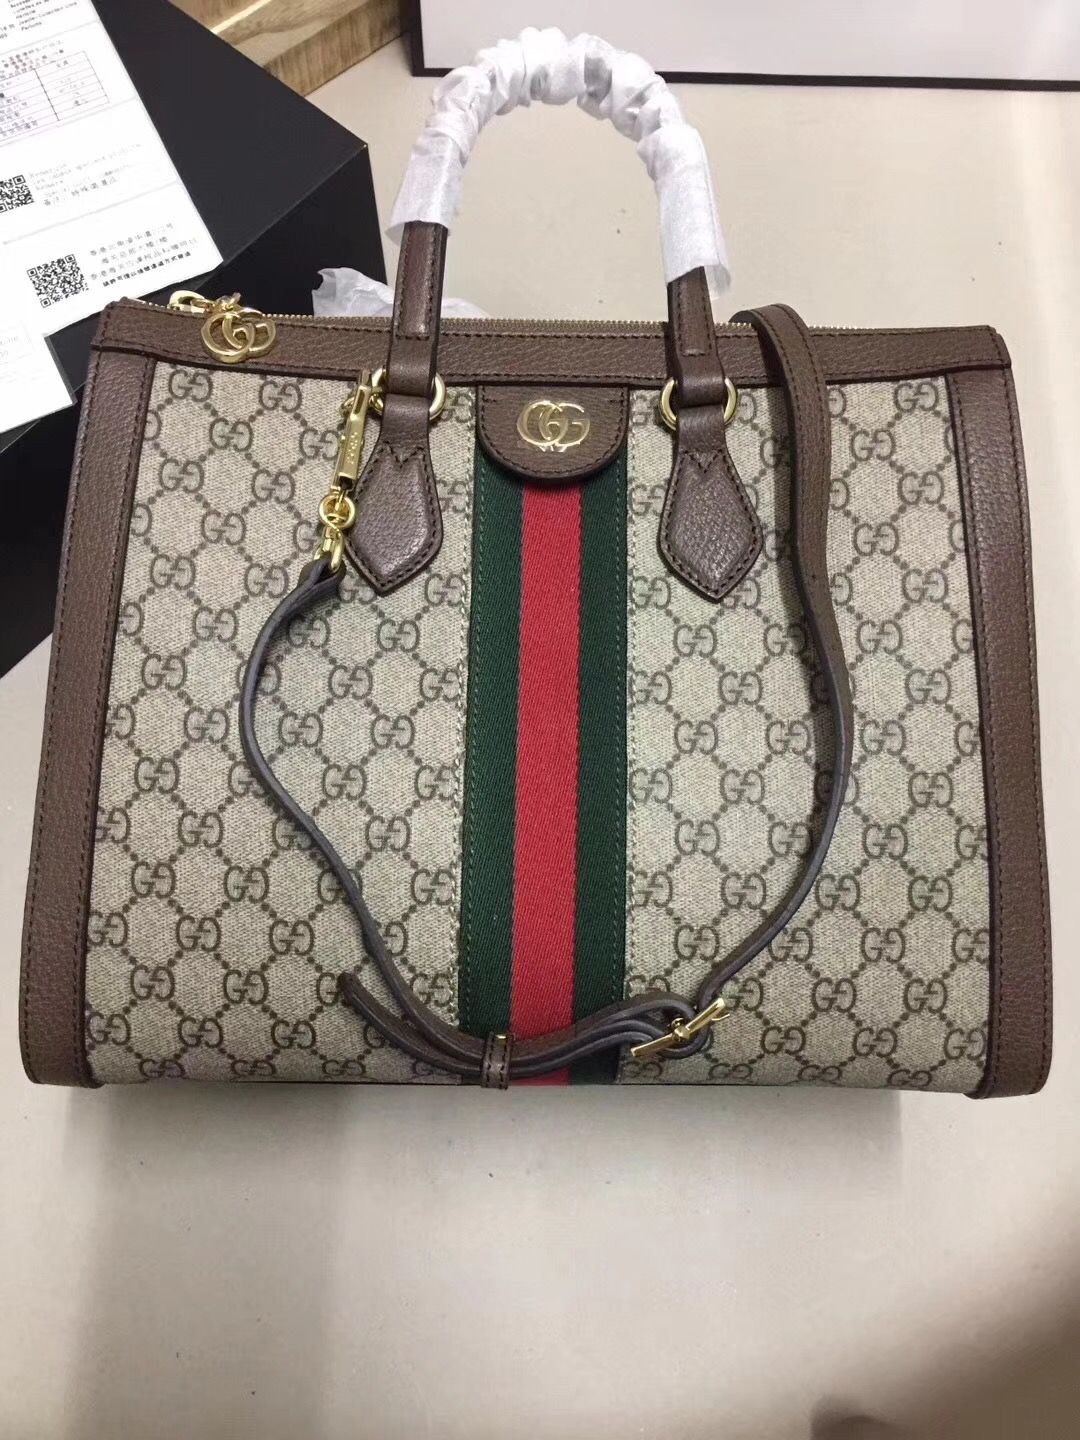 732d93219a5045 Gucci woman tote bag original leather version | Designer handbags in ...